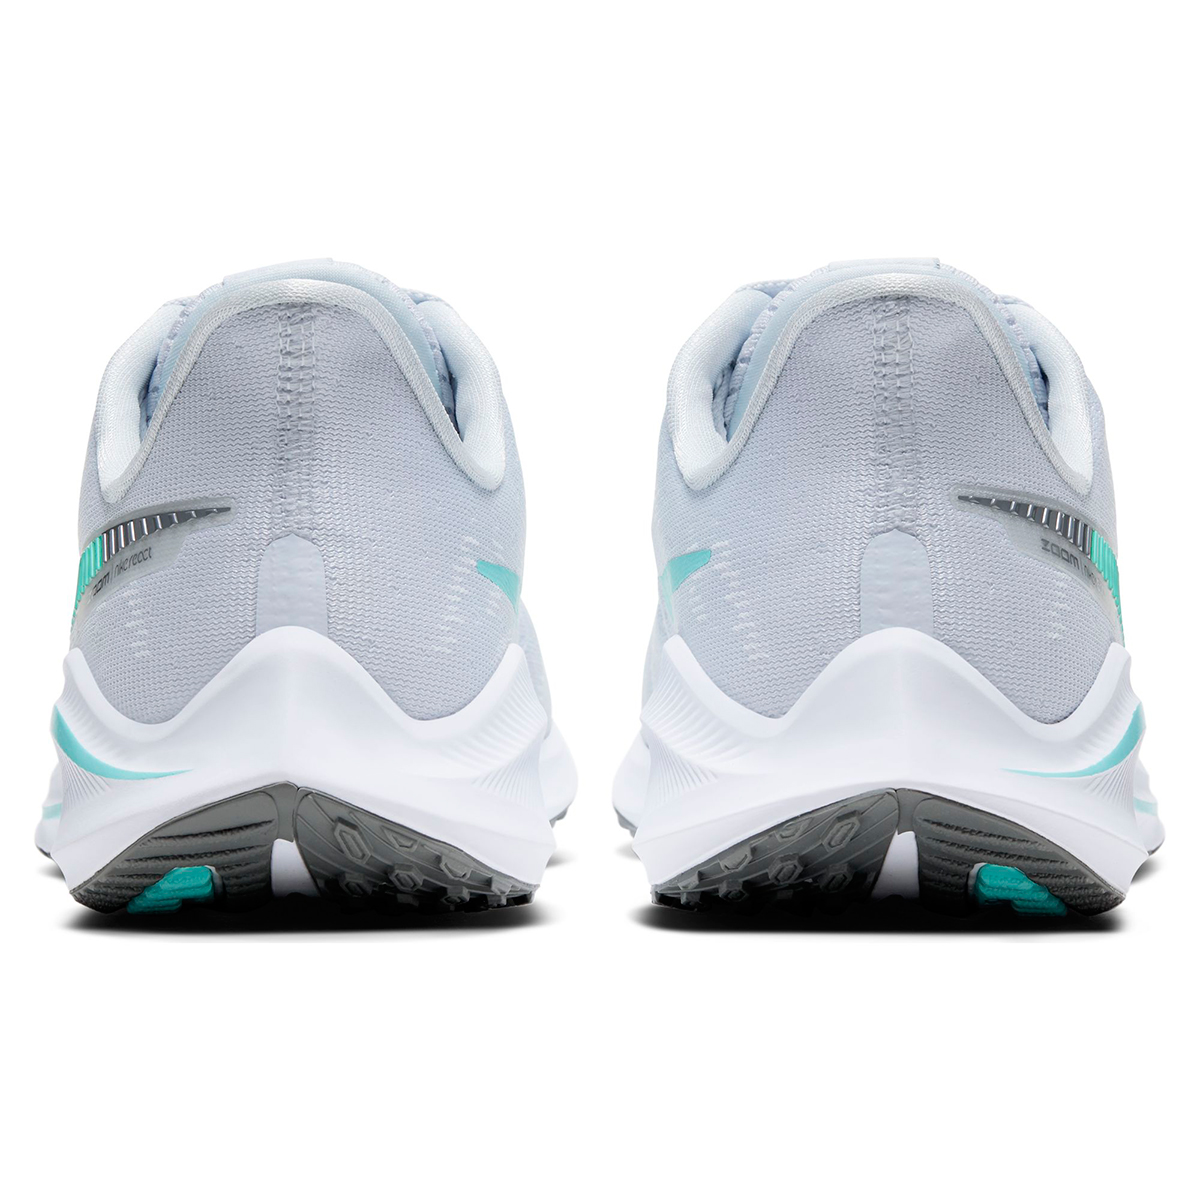 Women's Nike Air Zoom Vomero 14 Running Shoe - Color: Football Grey/White/Cool (Regular Width) - Size: 5, Football Grey/White/Cool, large, image 3